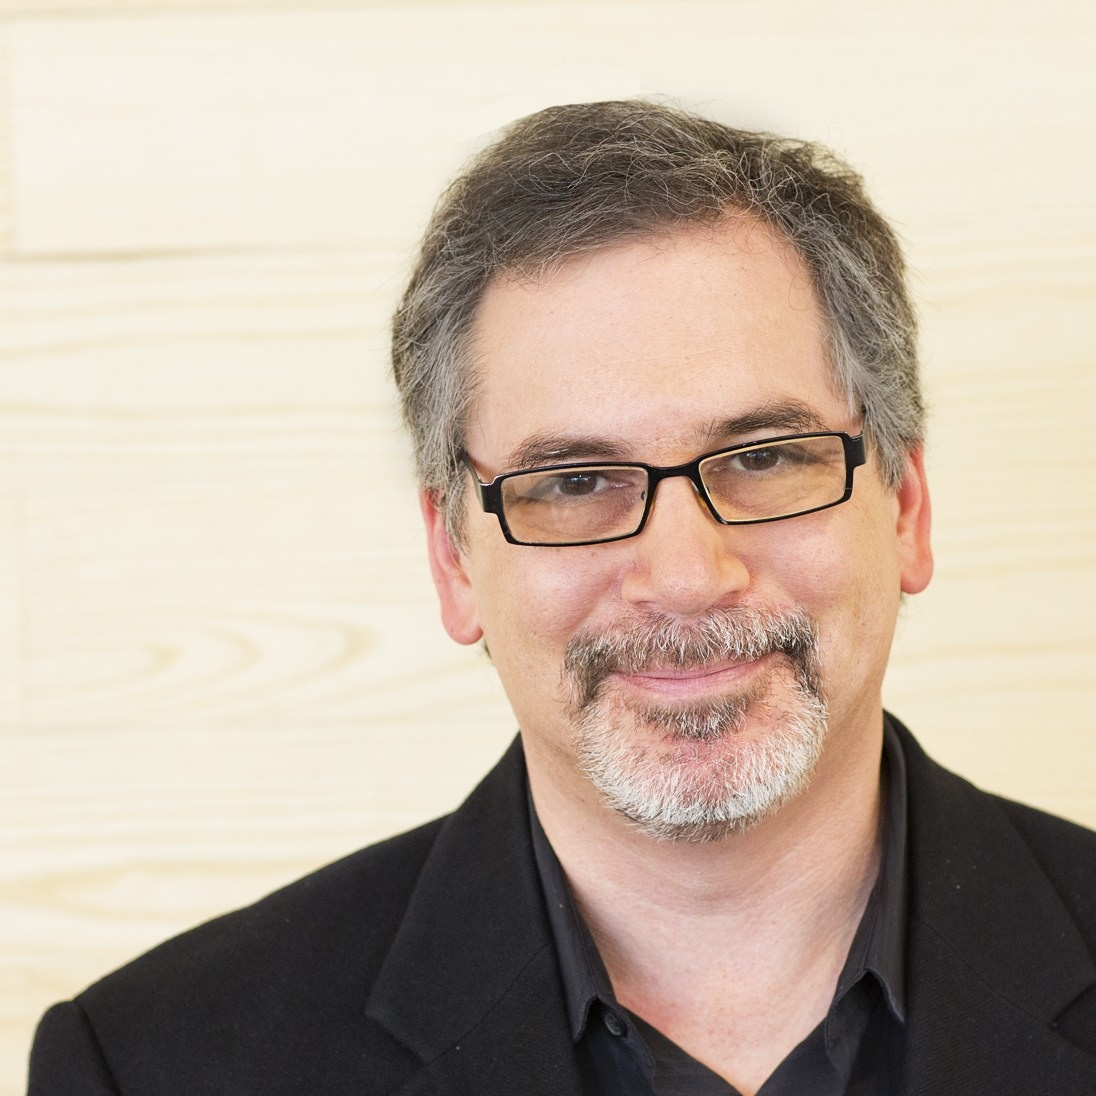 Welcome Rafe Needleman, Editor-in-Chief